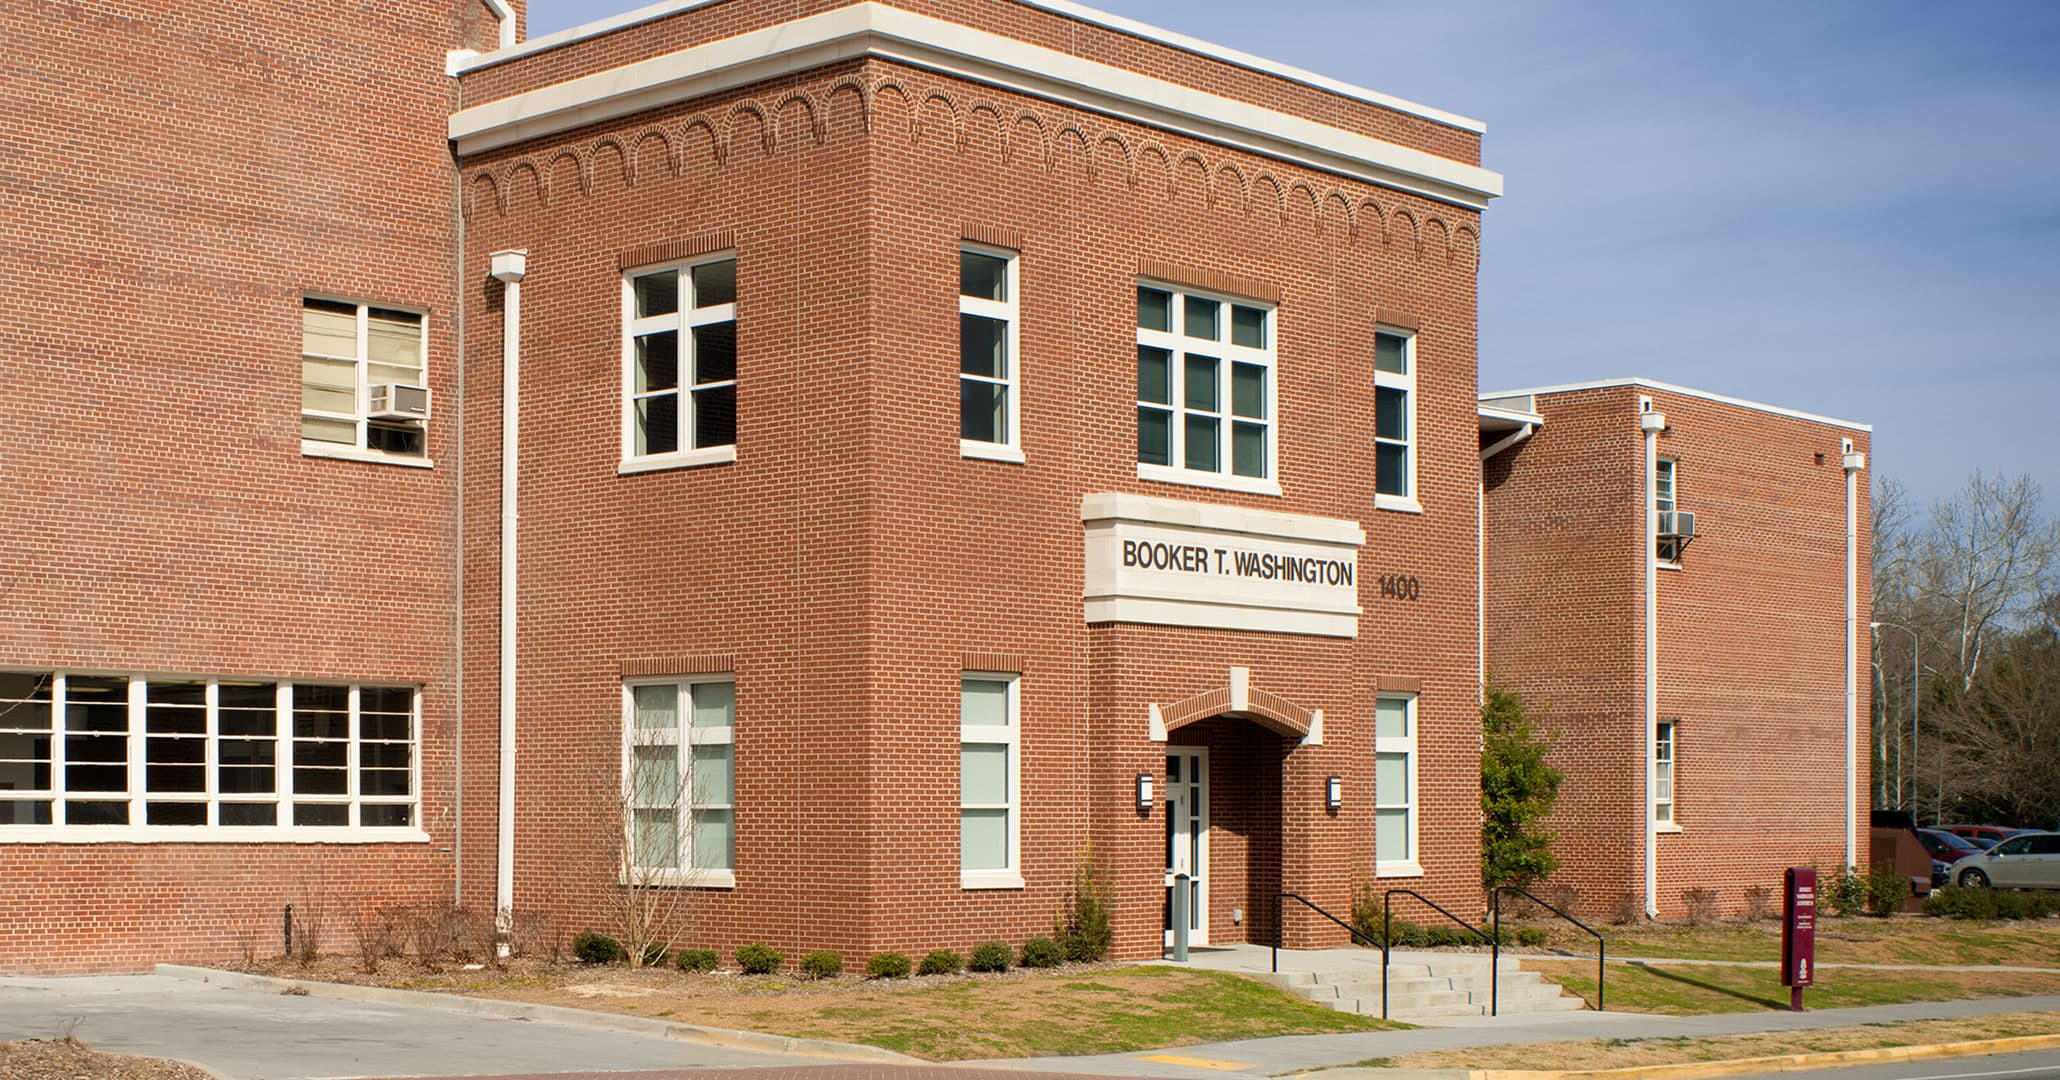 Boudreaux in Columbia, SC worked closely with black neighborhoods to design the new Booker T Washington Auditorium.